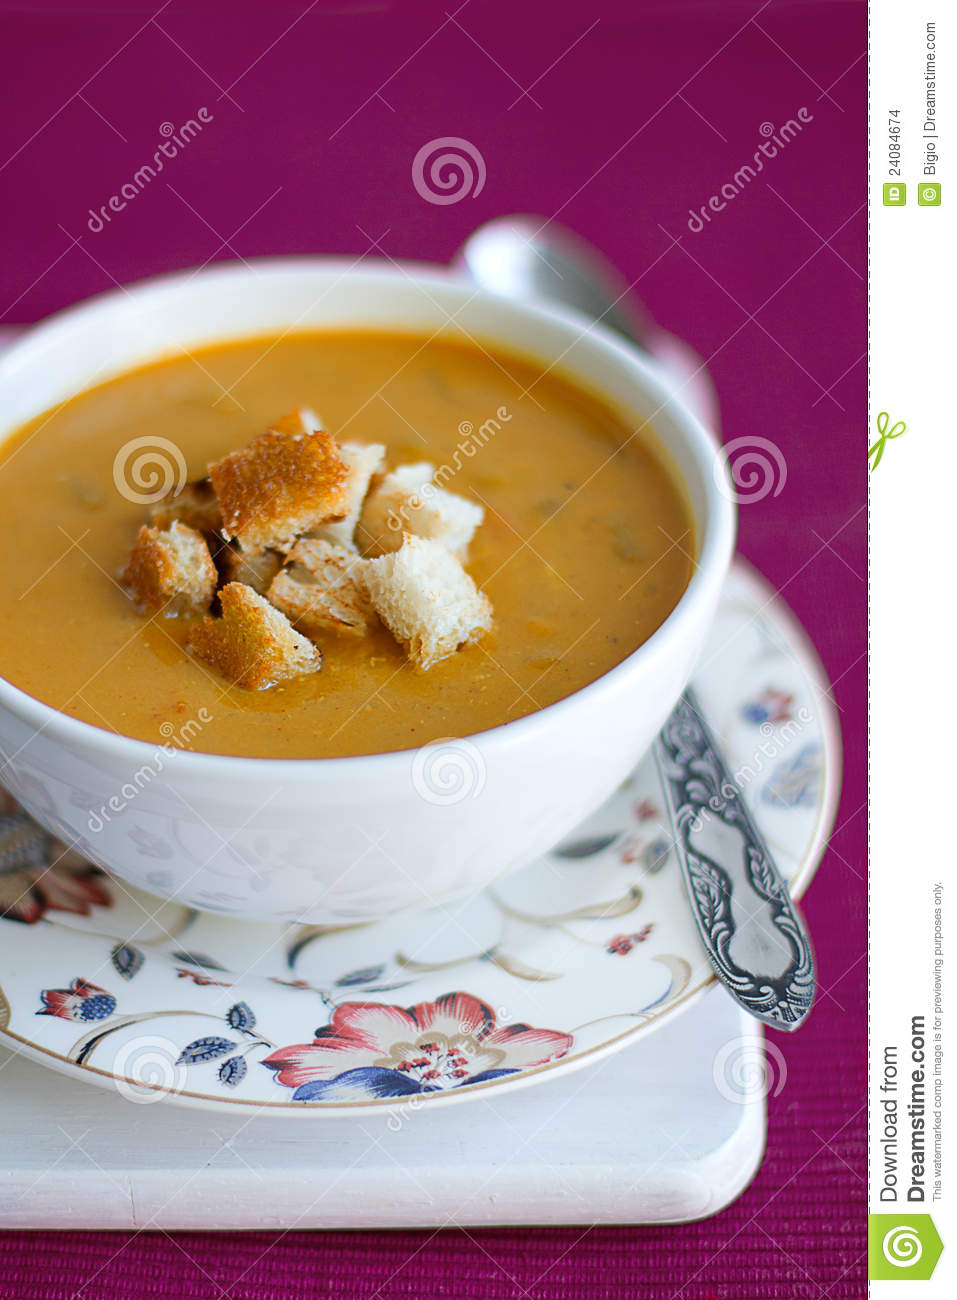 Pumpkin And Lentils Cream Soup With Croutons Stock Images - Image ...